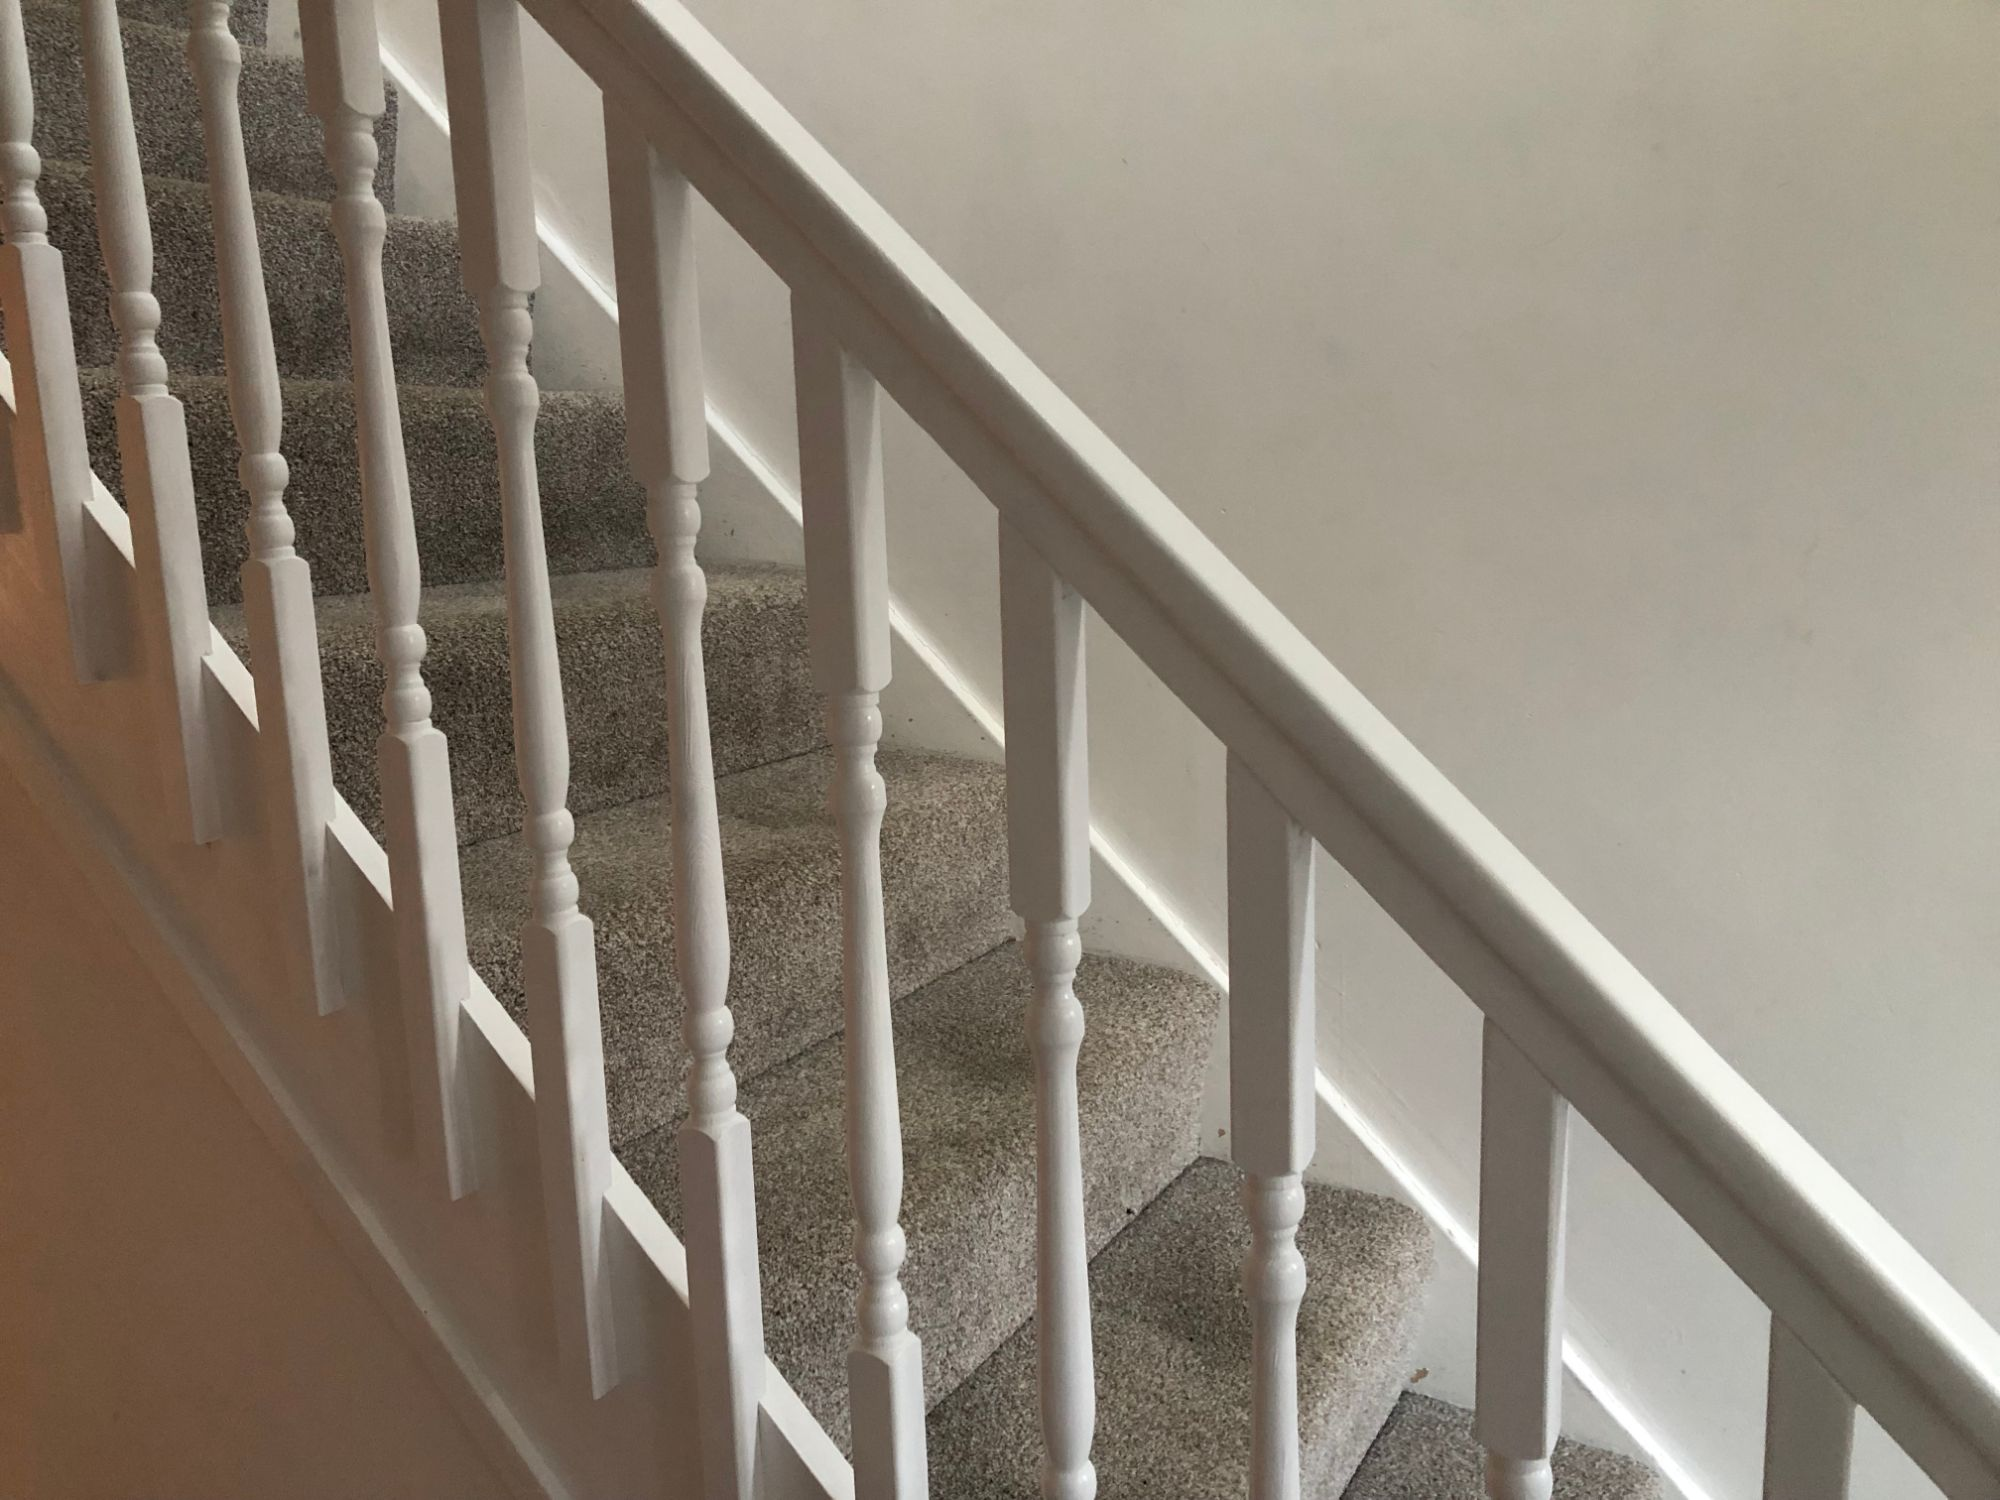 Free stock photo new spindles DIY white paint staircase